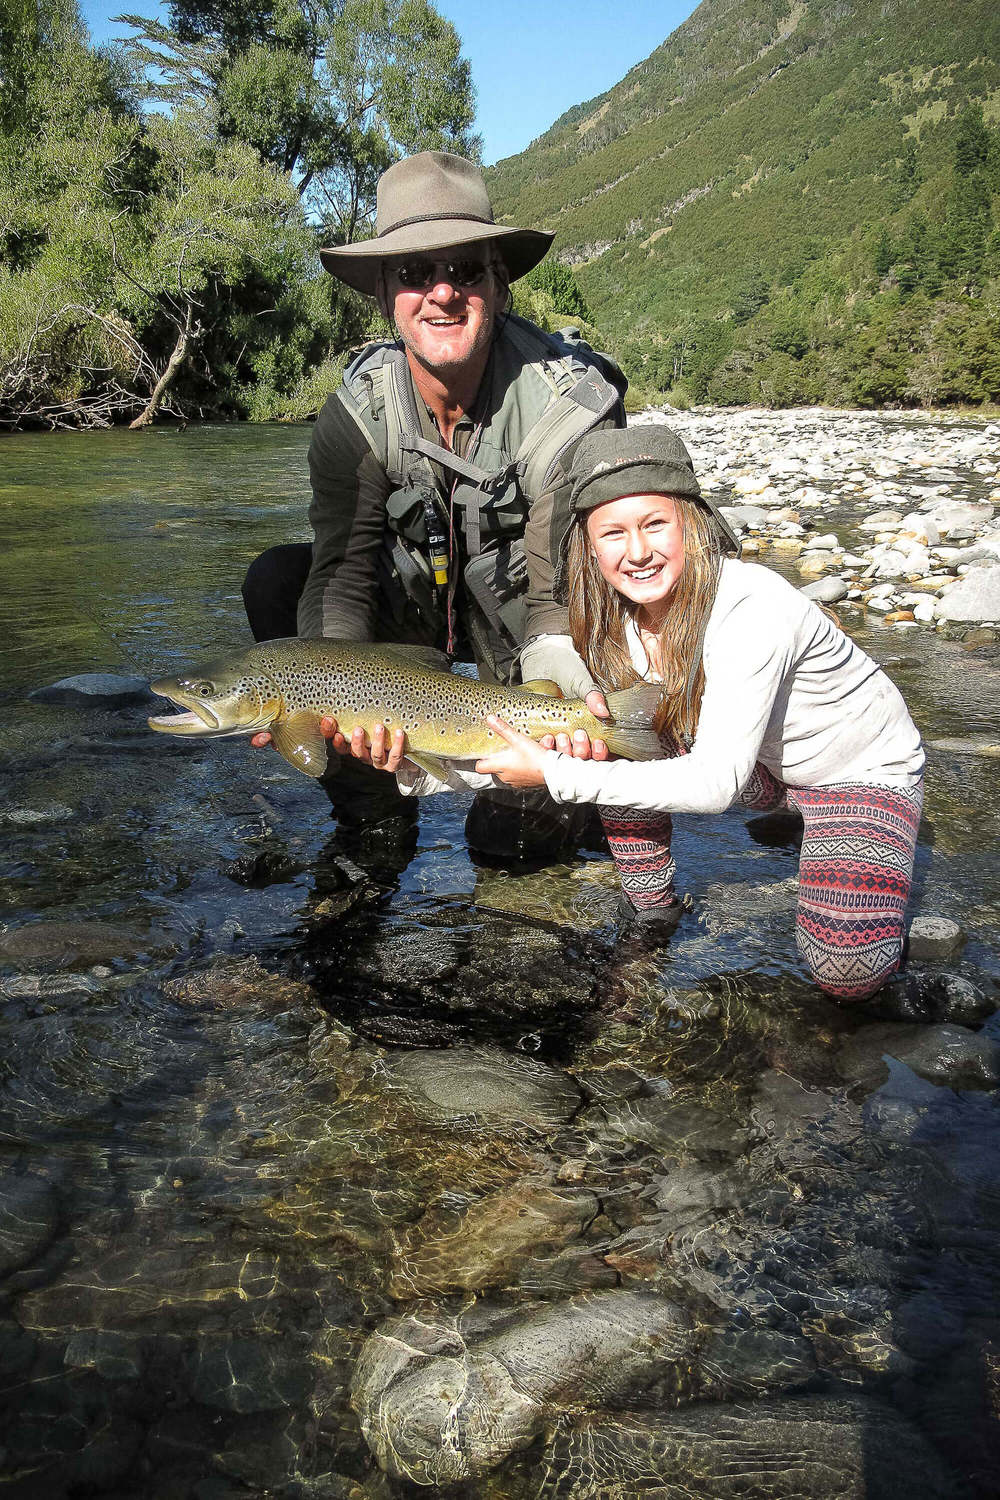 My-Neice-Ketja-with-a-6lber-she-caught-while-visiting-New-Zealand-By-Gebhard-Krewitt.jpg